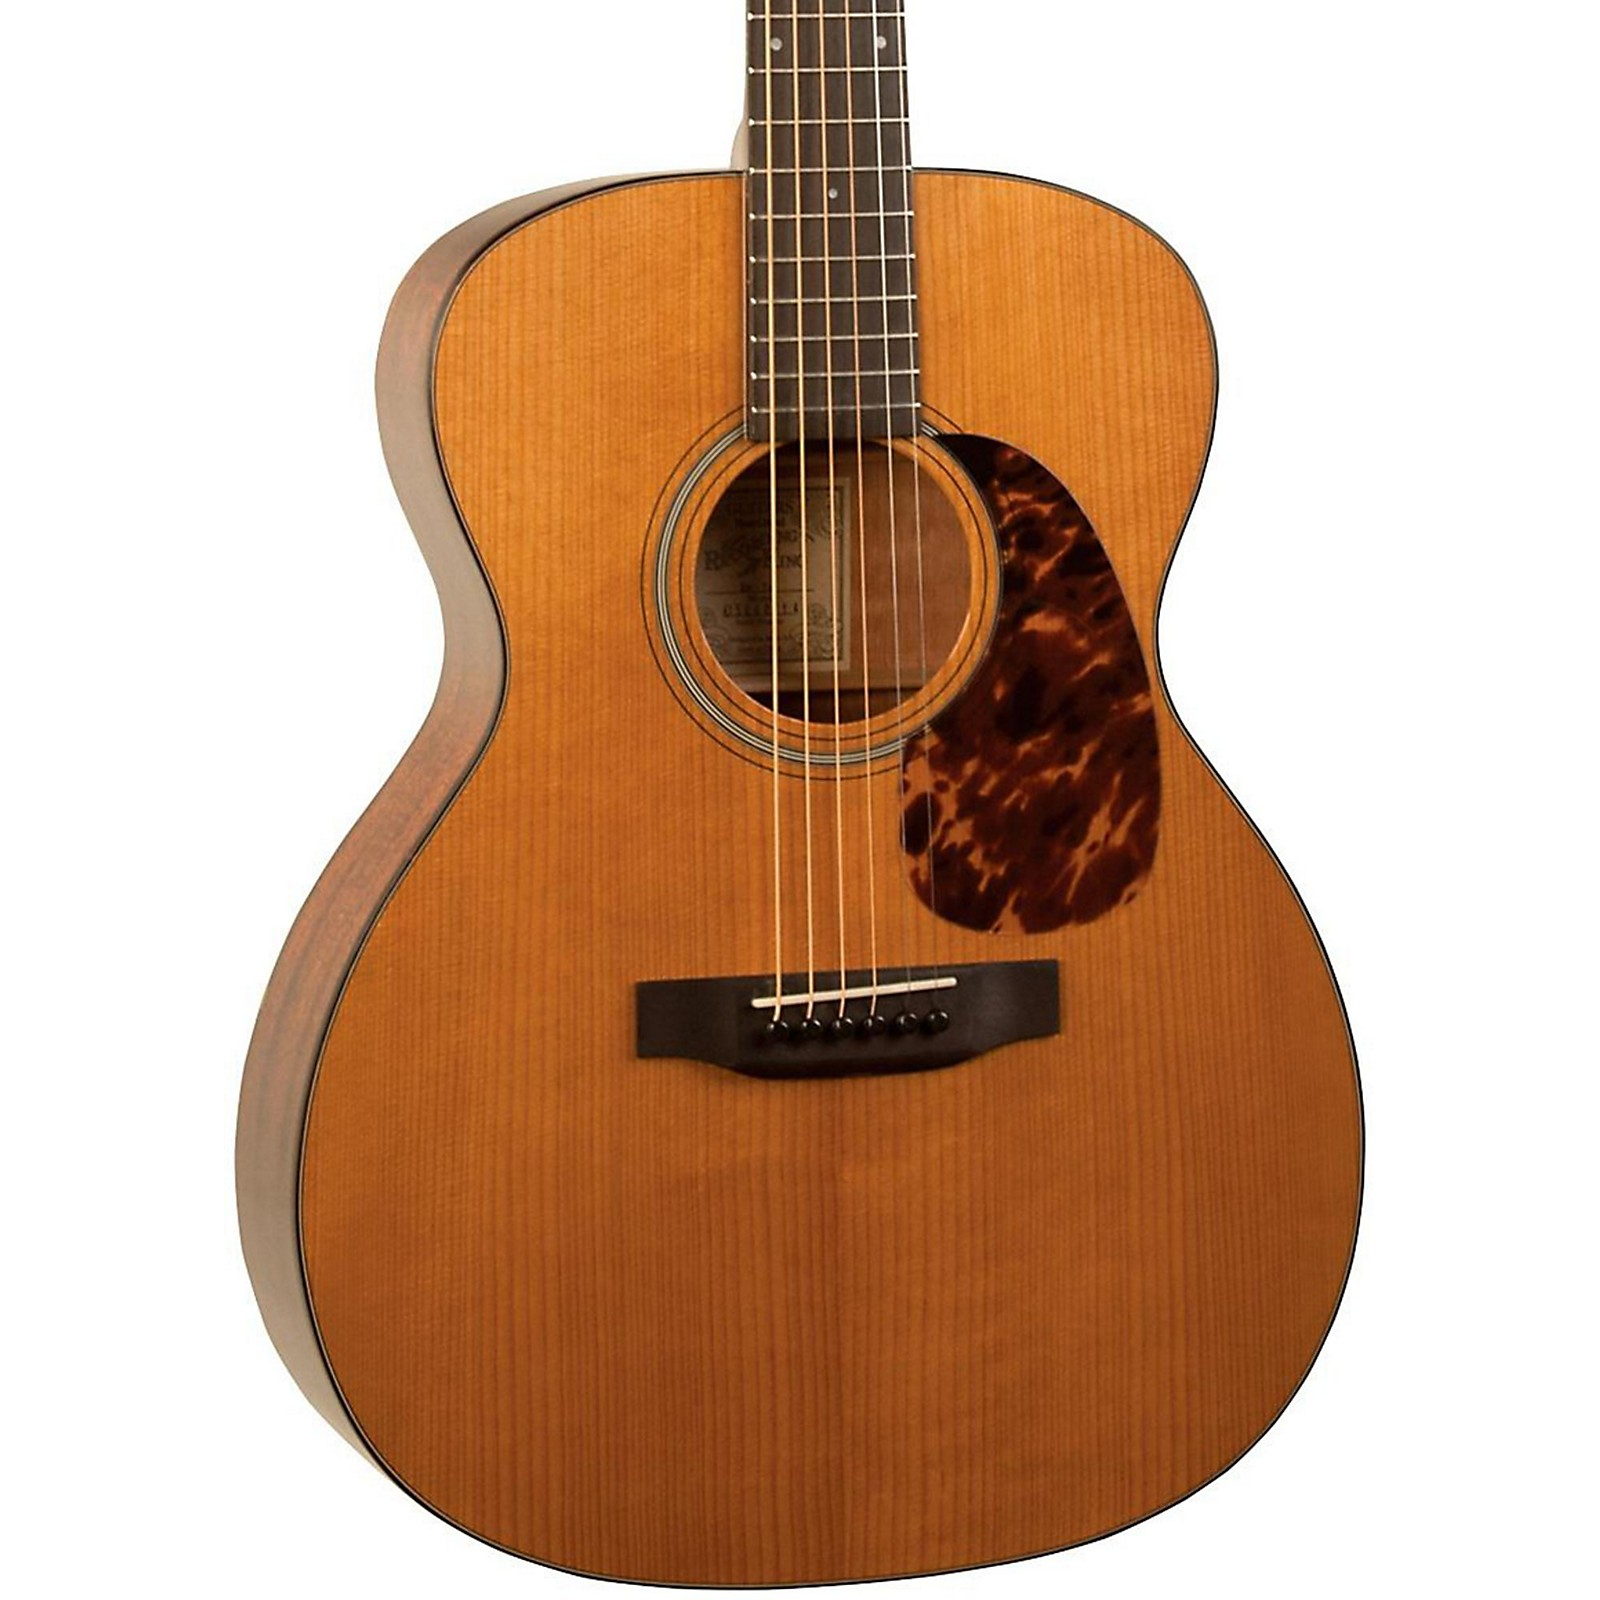 Recording King Classic Series 000 Torrefied Adirondack Spruce Top Acoustic Guitar